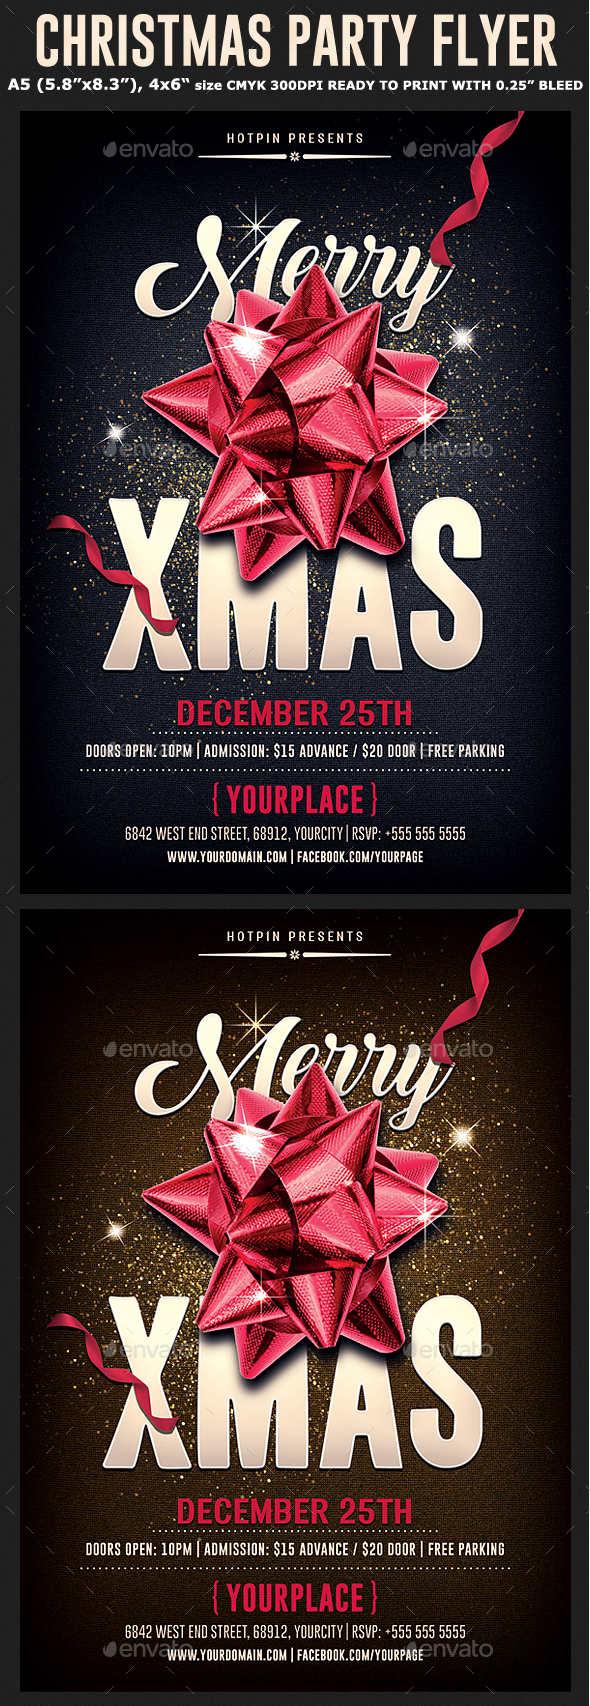 Christmas Psd Party Flyer Template - Holidays Events